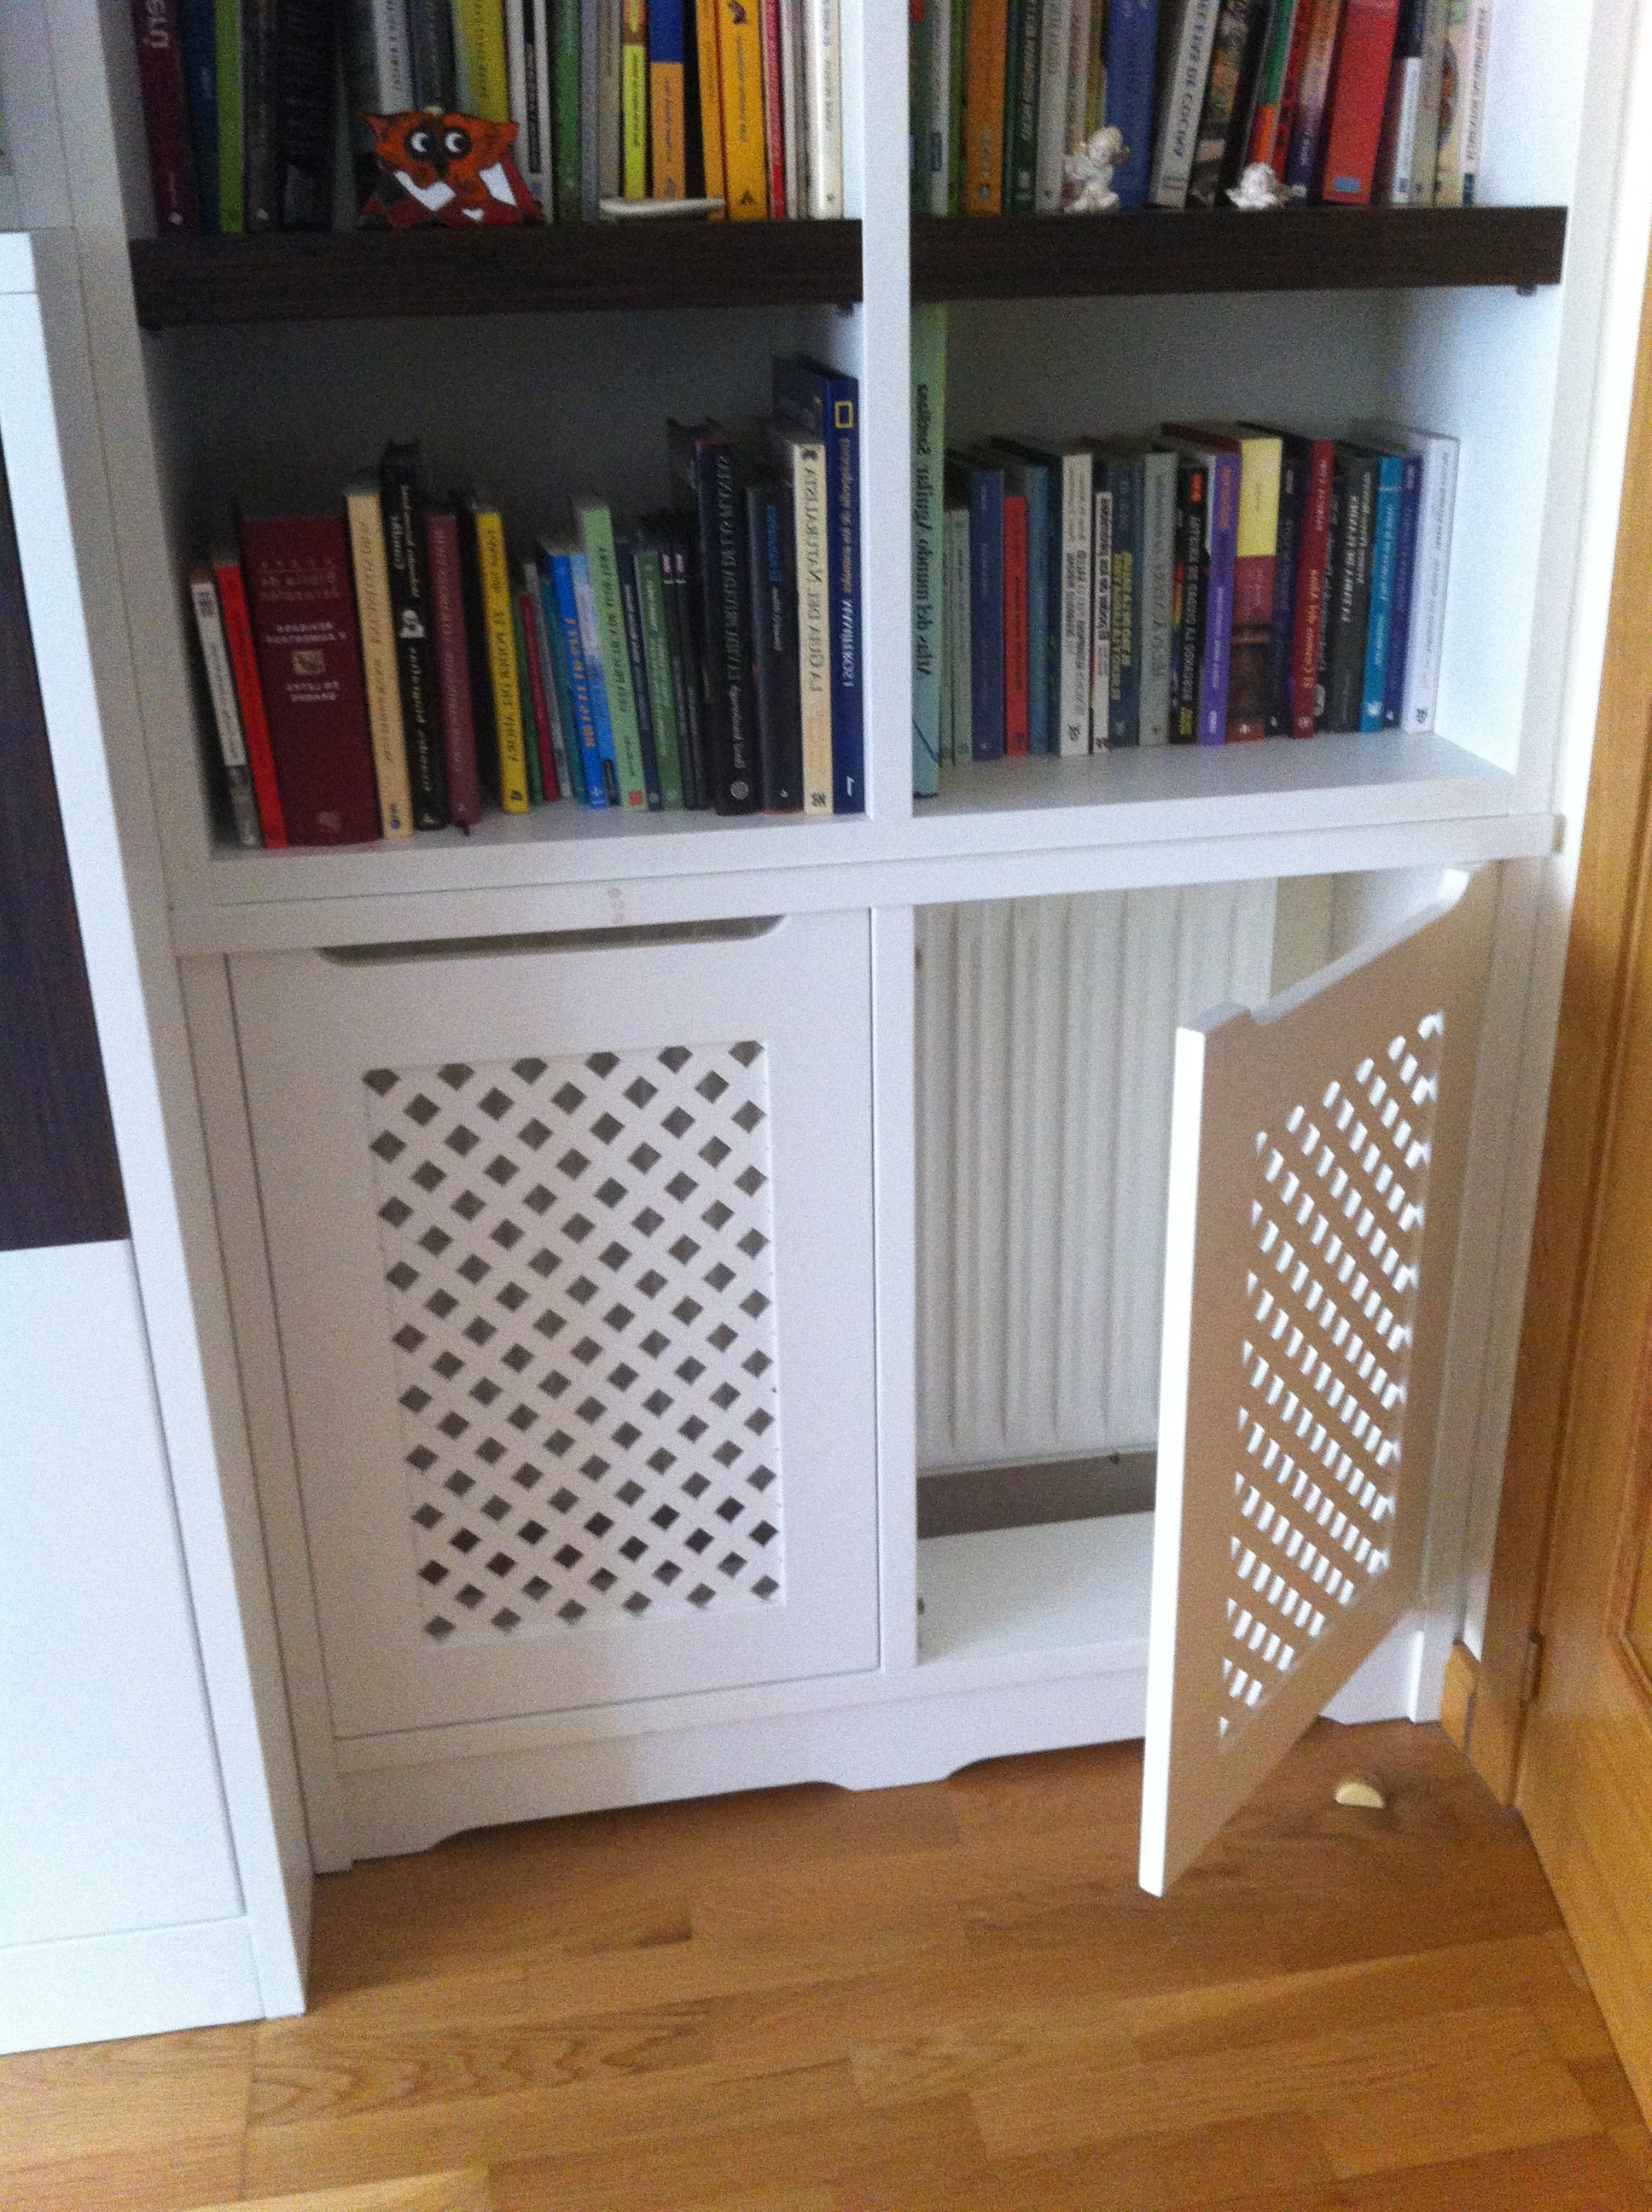 Most Recently Released Radiator Cover With Bookcases Inside Zabodowa Kaloryfera Z Drzwiami Z Kratki Drewnianej (View 6 of 15)